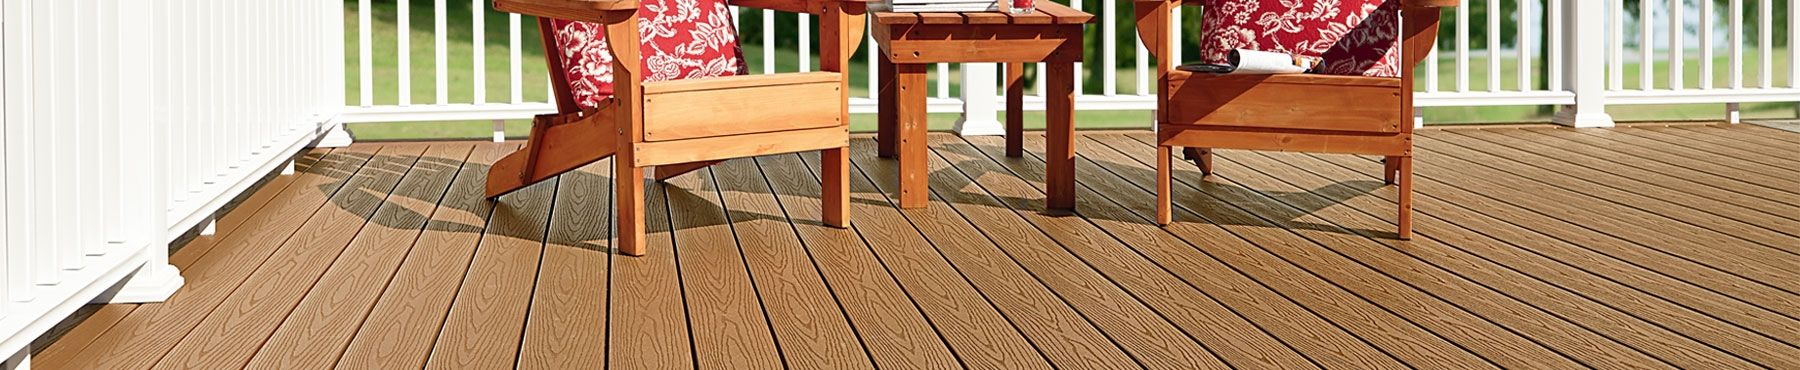 Low Maintenance Value Composite Decking Fiberon